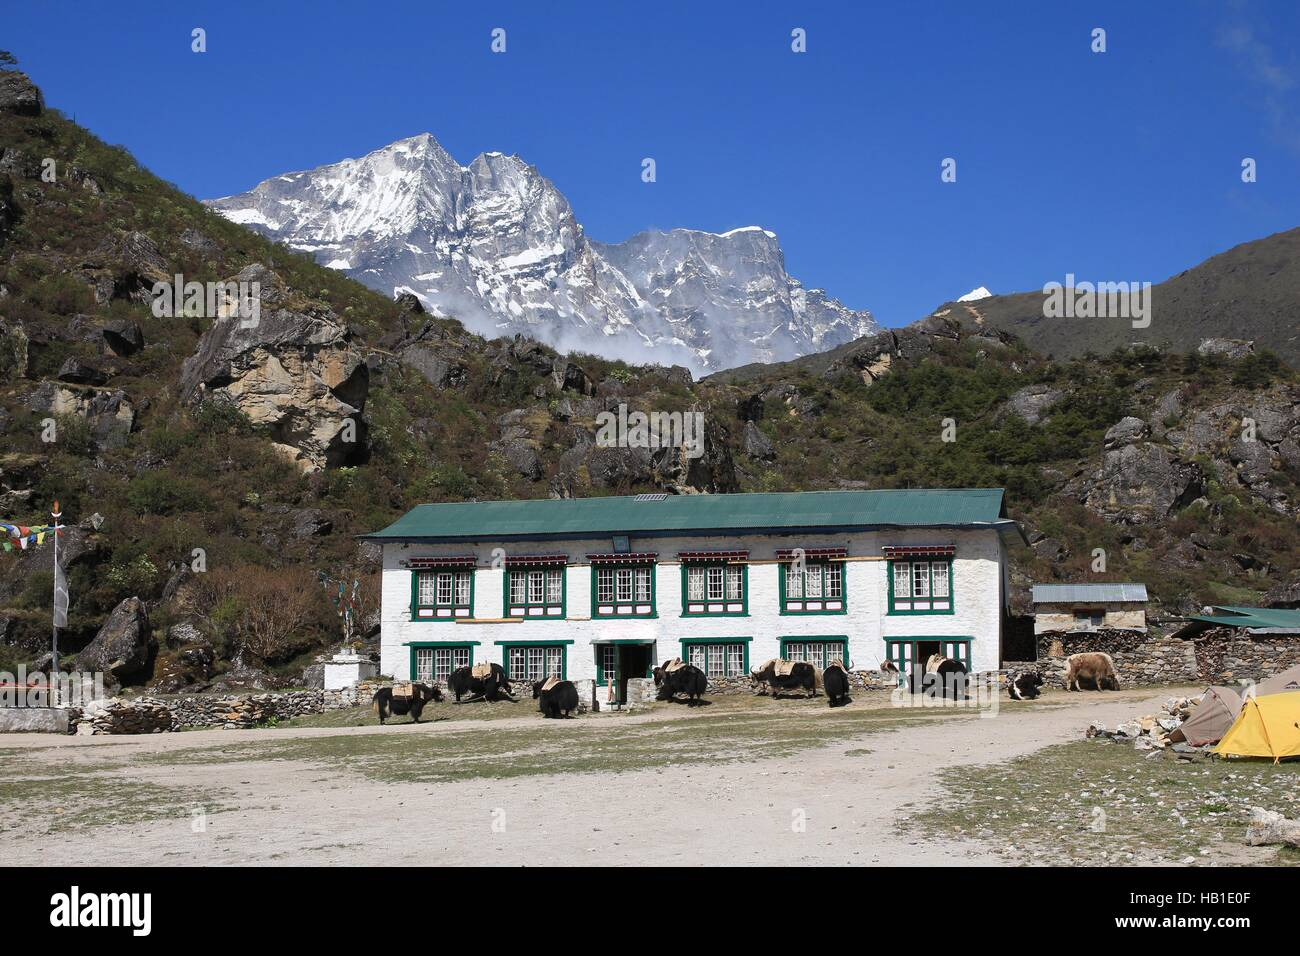 Yaks in front of a lodge in Khumjung - Stock Image